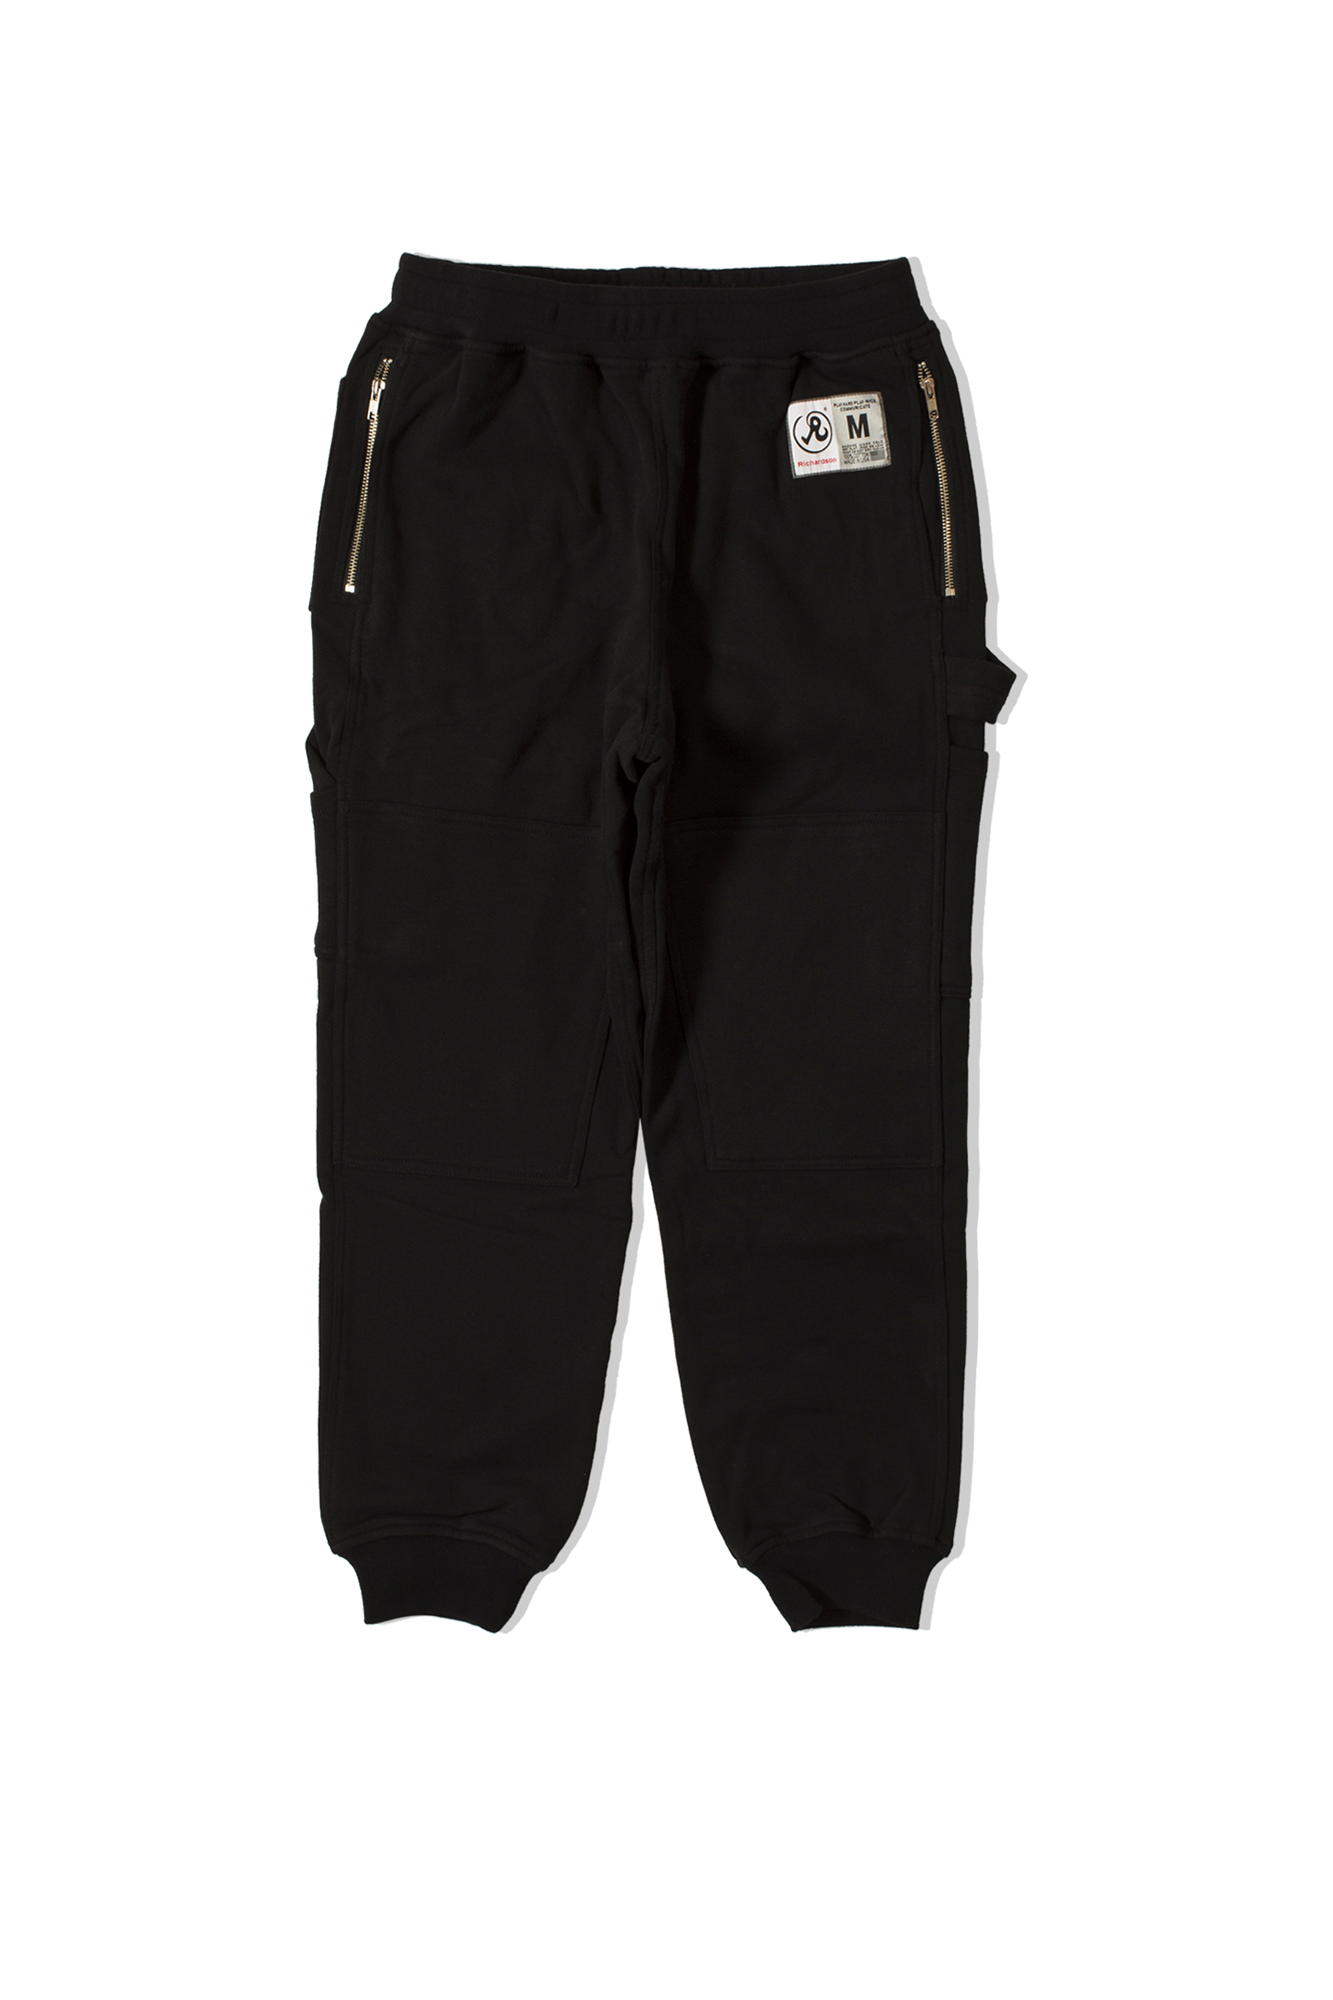 Engineered Sweats Black